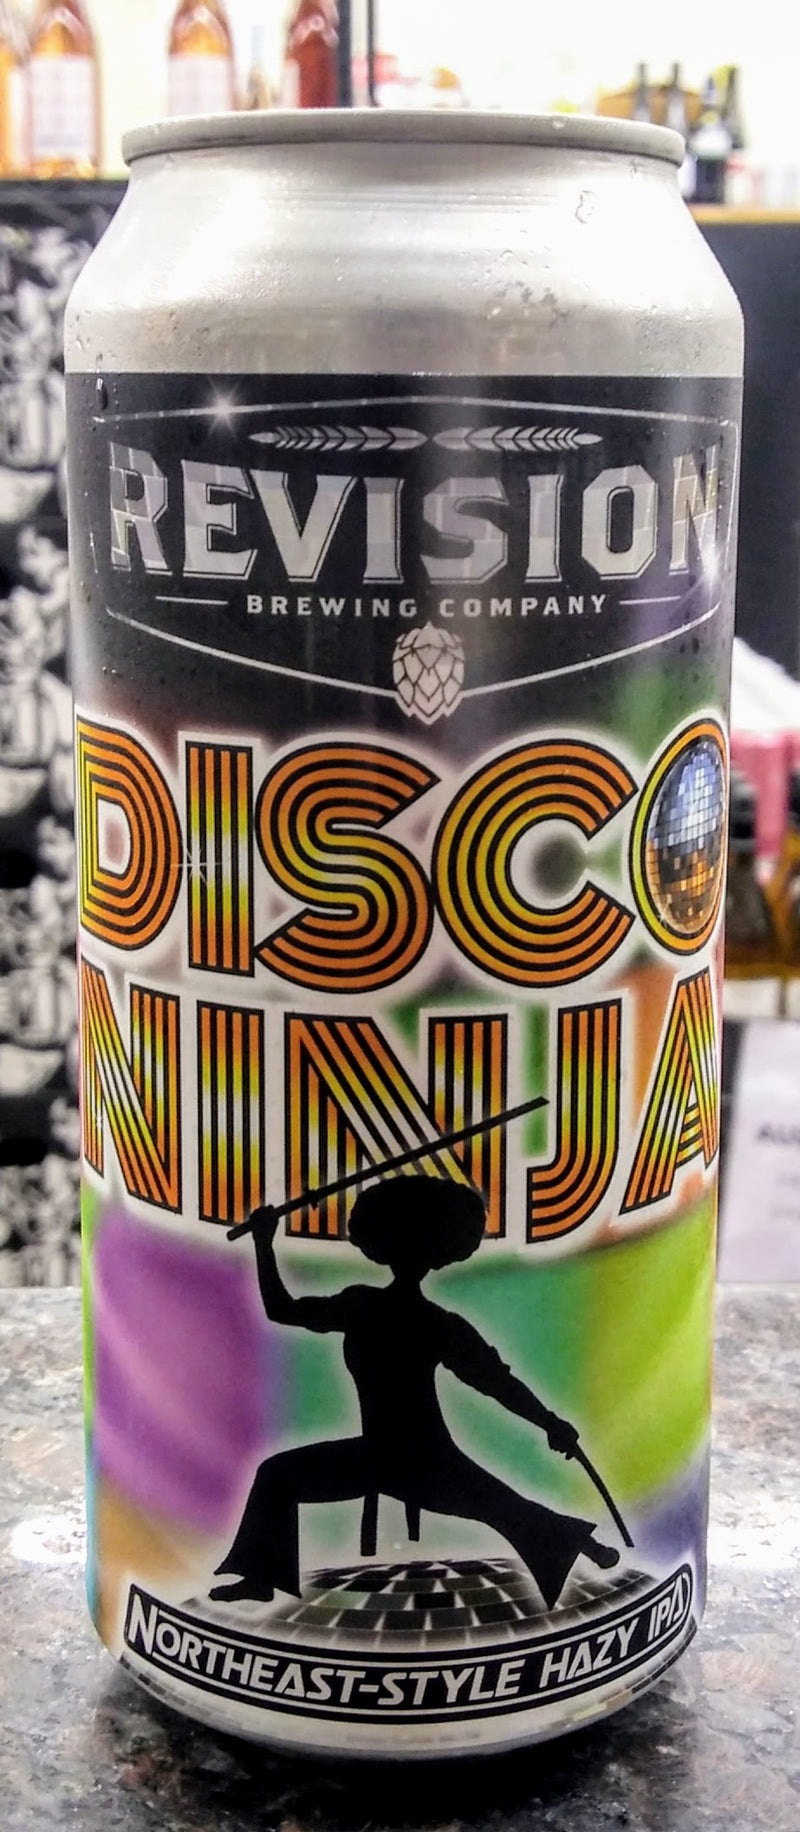 REVISION BREWING CO. DISCO NINJA NE HAZY IPA 16oz can